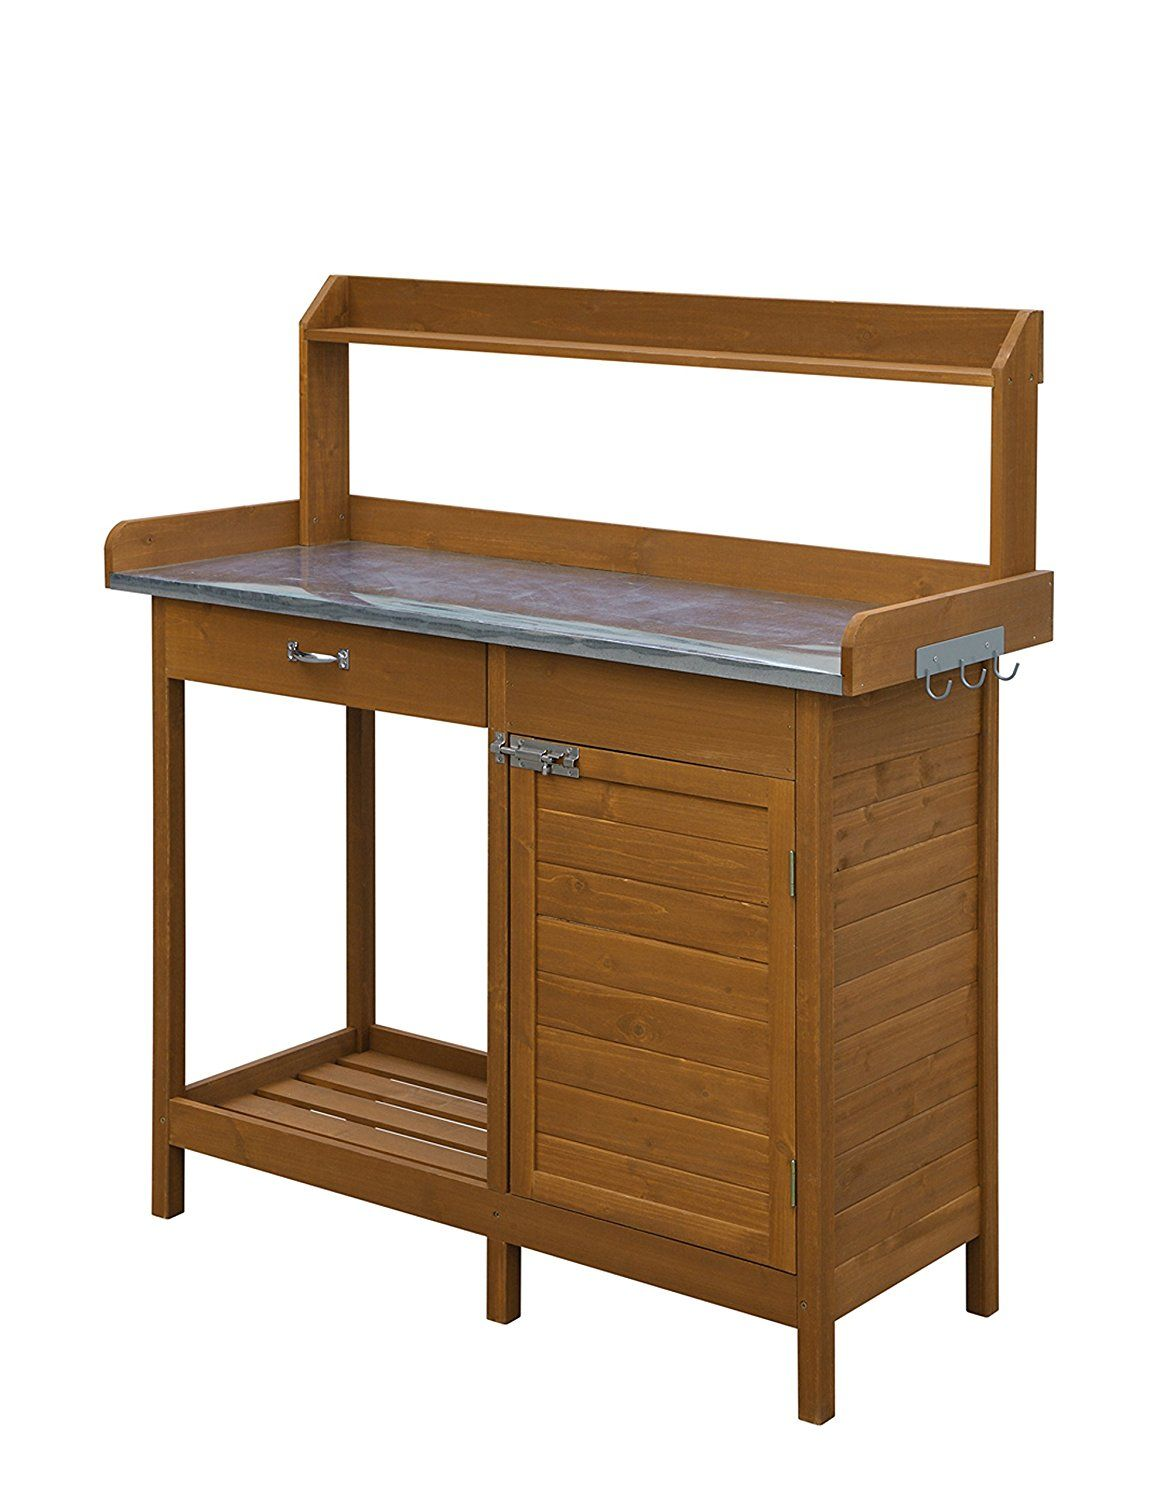 Convenience Concepts Deluxe Potting Bench With Cabinet See This Awesome Image Home Diy Garden Potting Bench Convenience Concepts Outdoor Kitchen